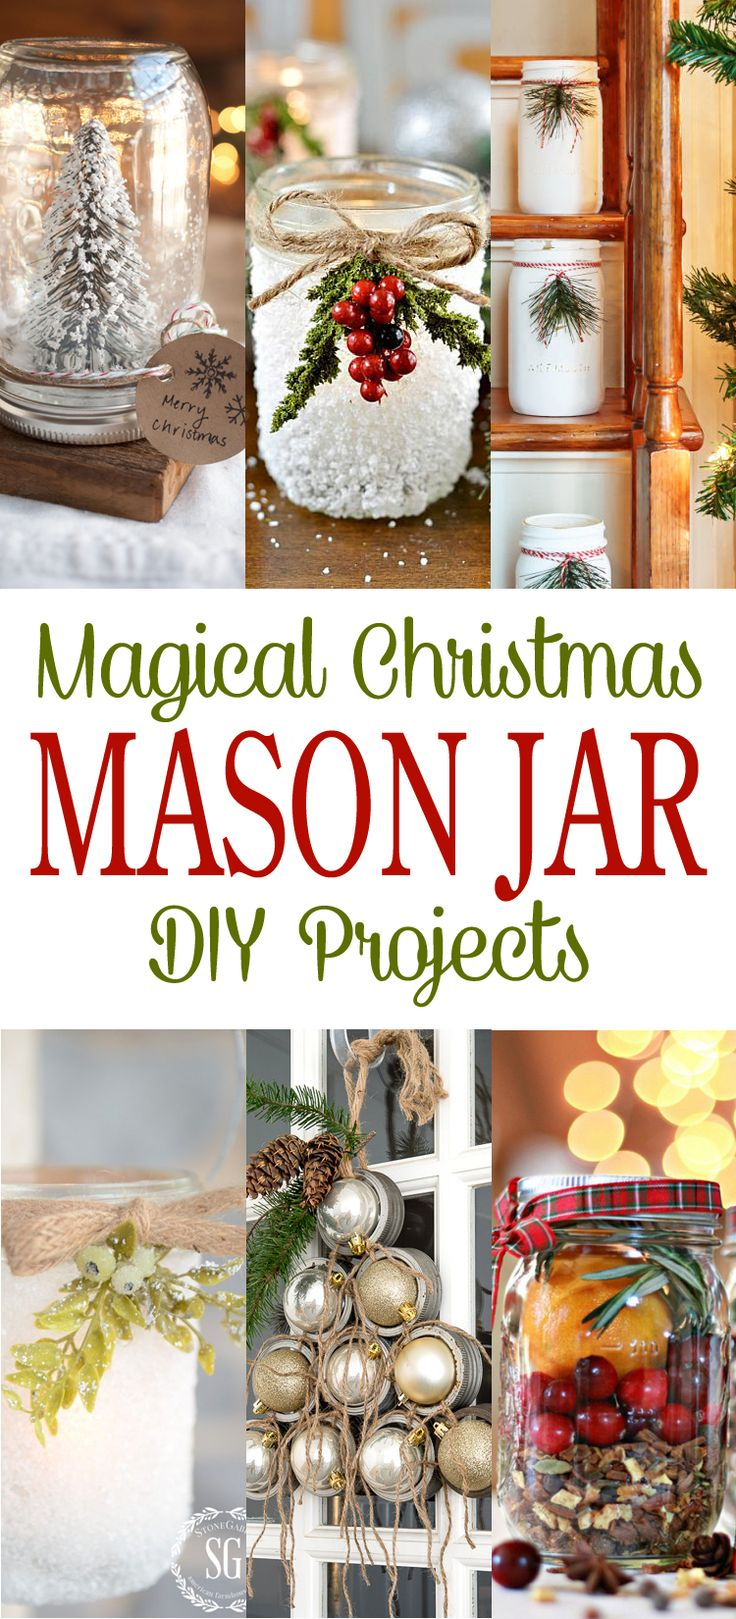 Magical Christmas Mason Jar DIY Projects you will LOVE!